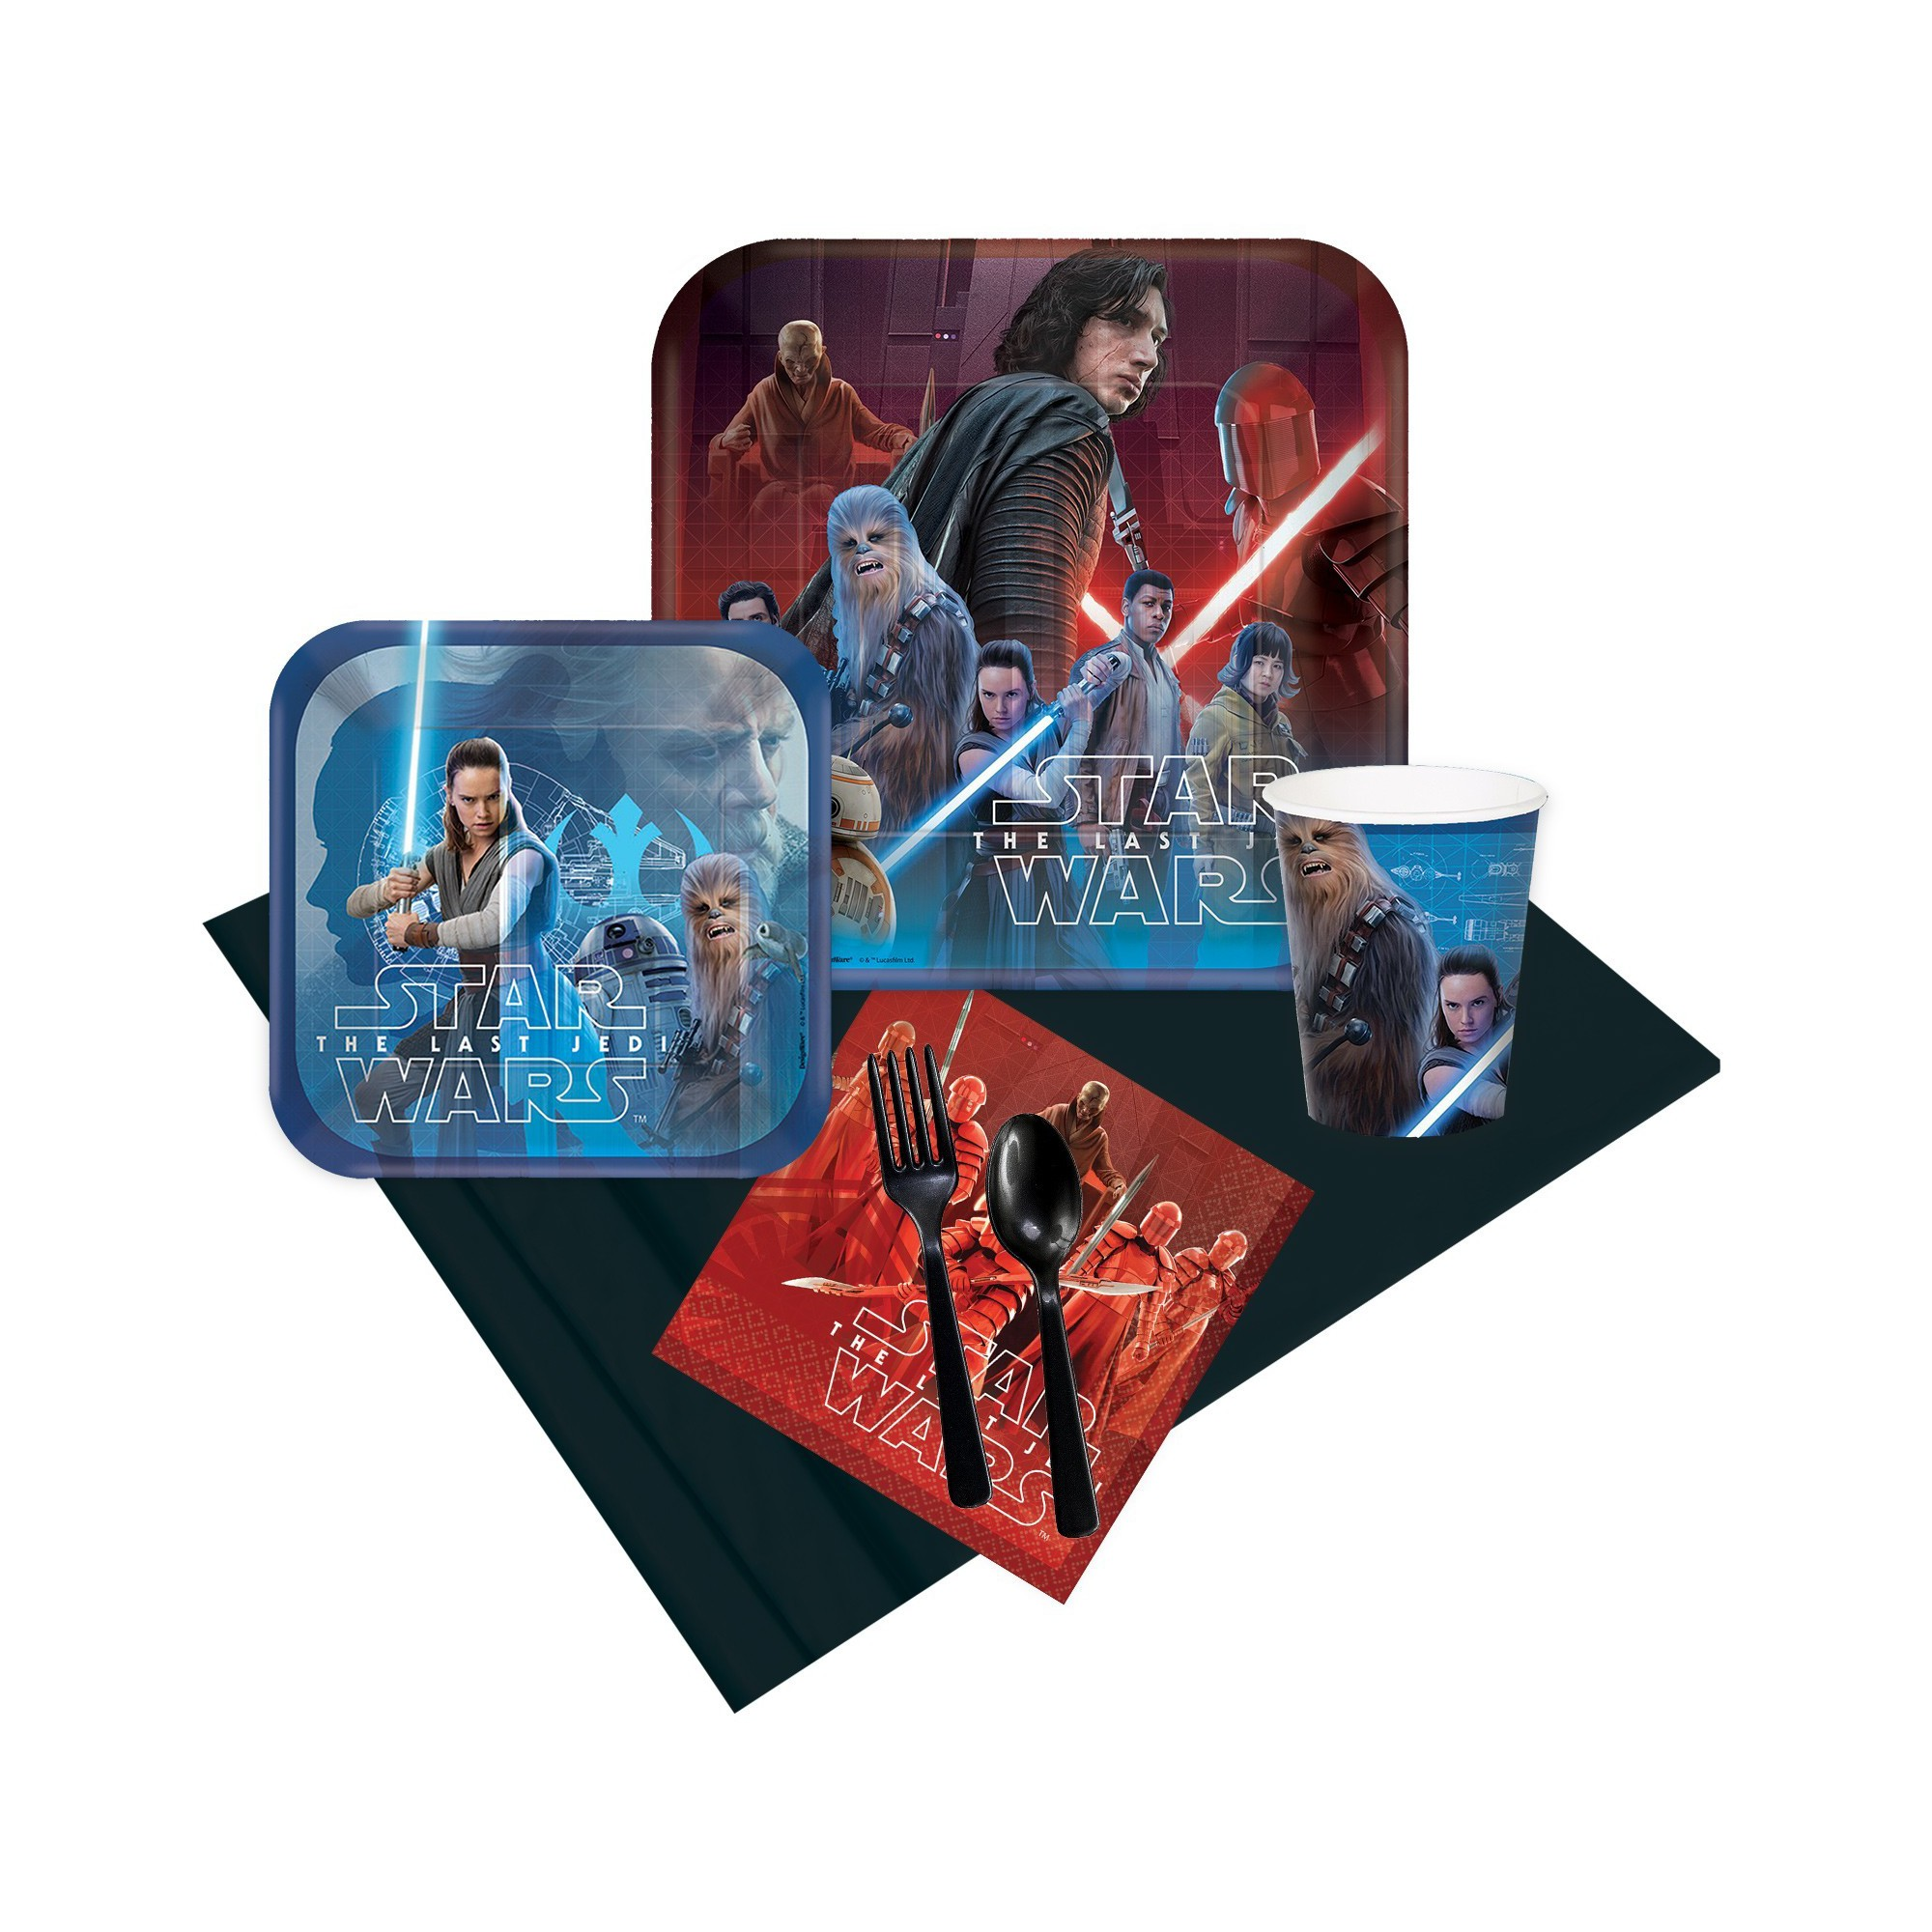 16 Guest Party Pack BuySeasons Star Wars: The Last Jedi, Multicolored